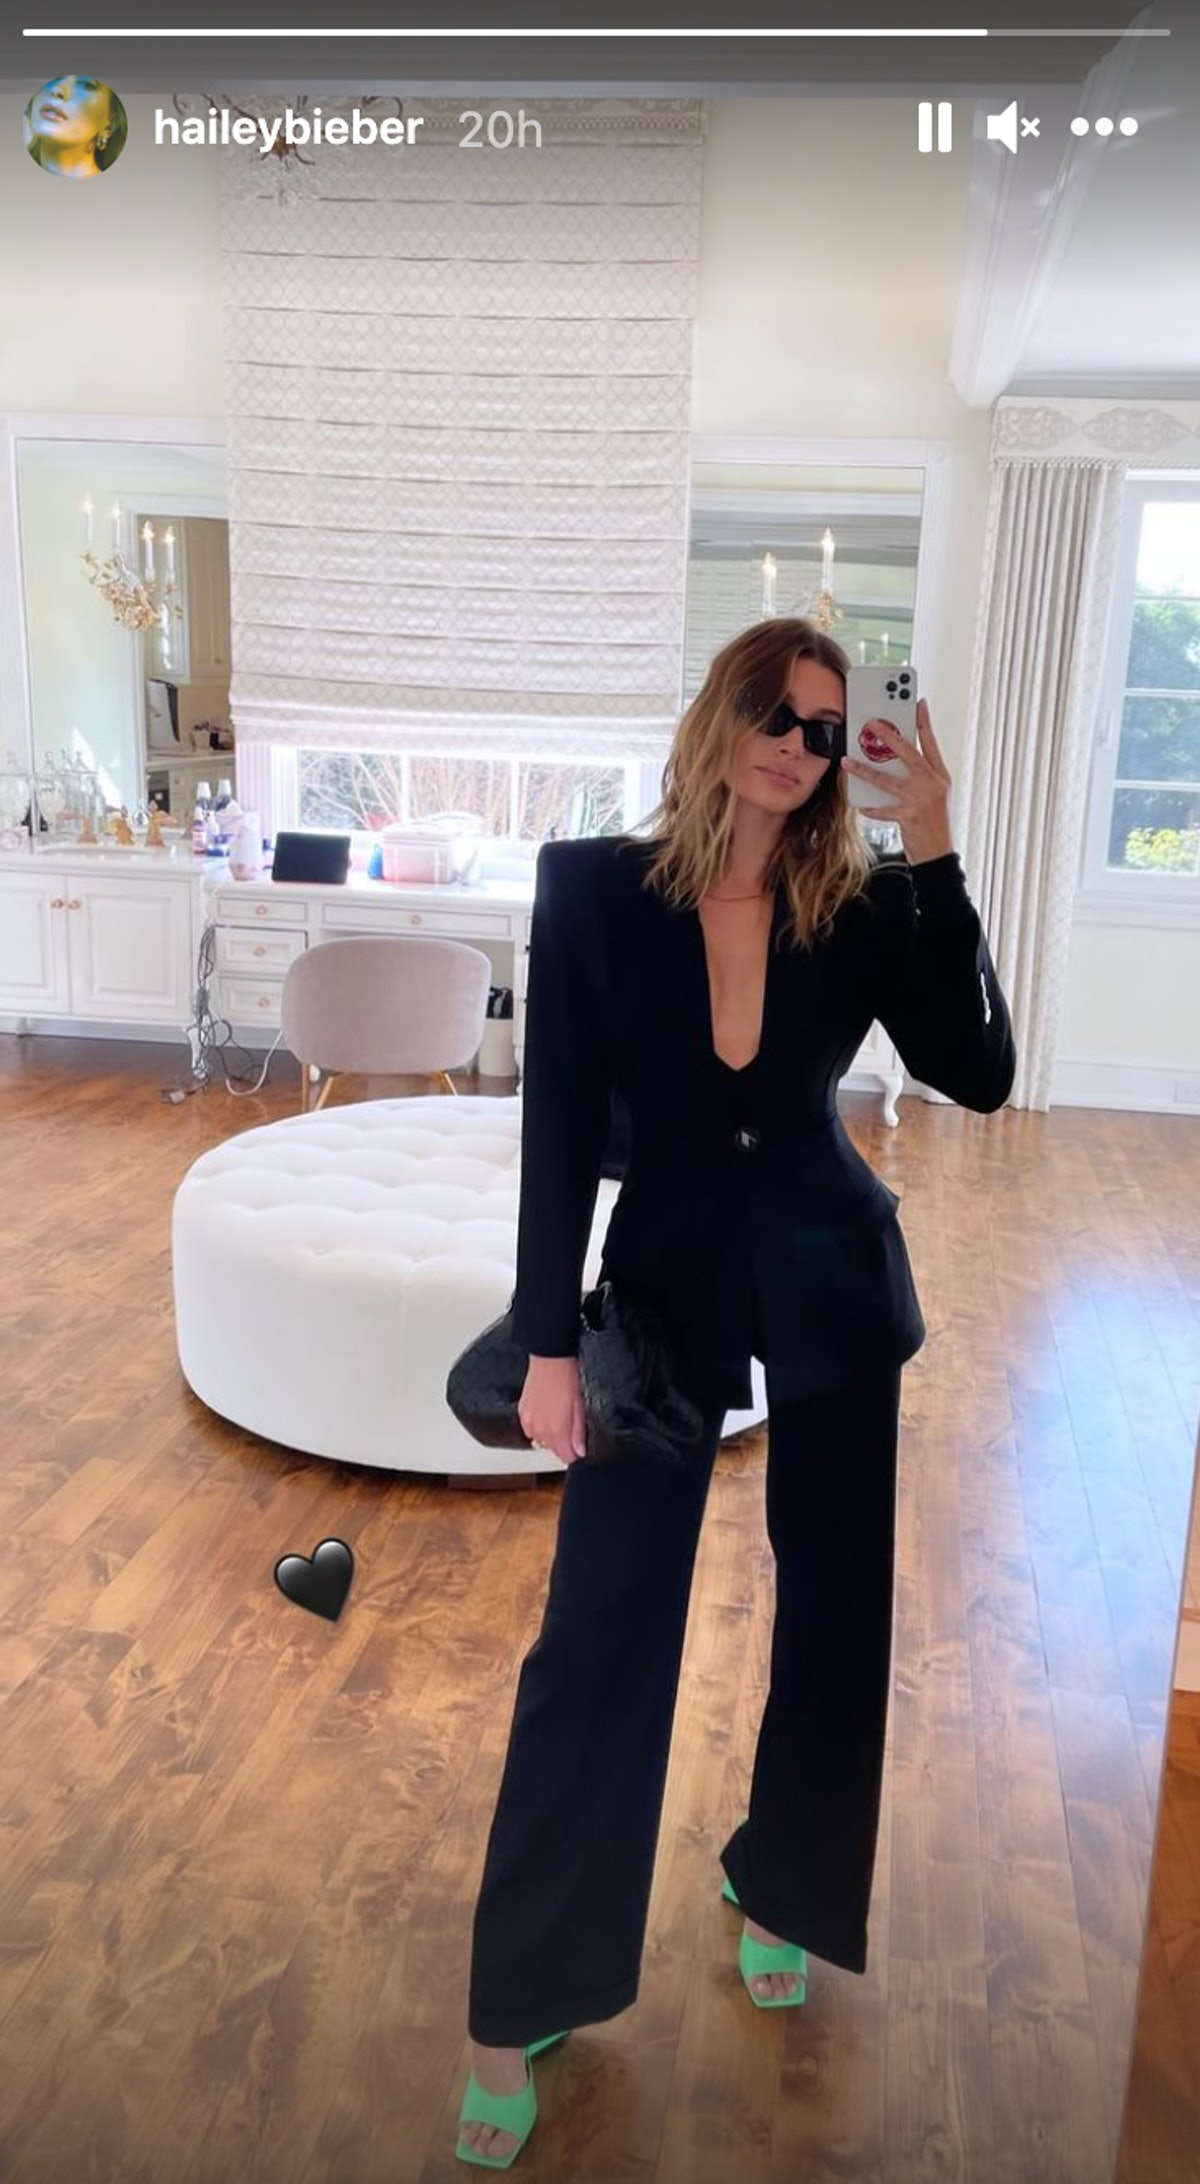 Hailey Bieber posts to Instagram Stories while wearing an Attico black blazer and pants combination.